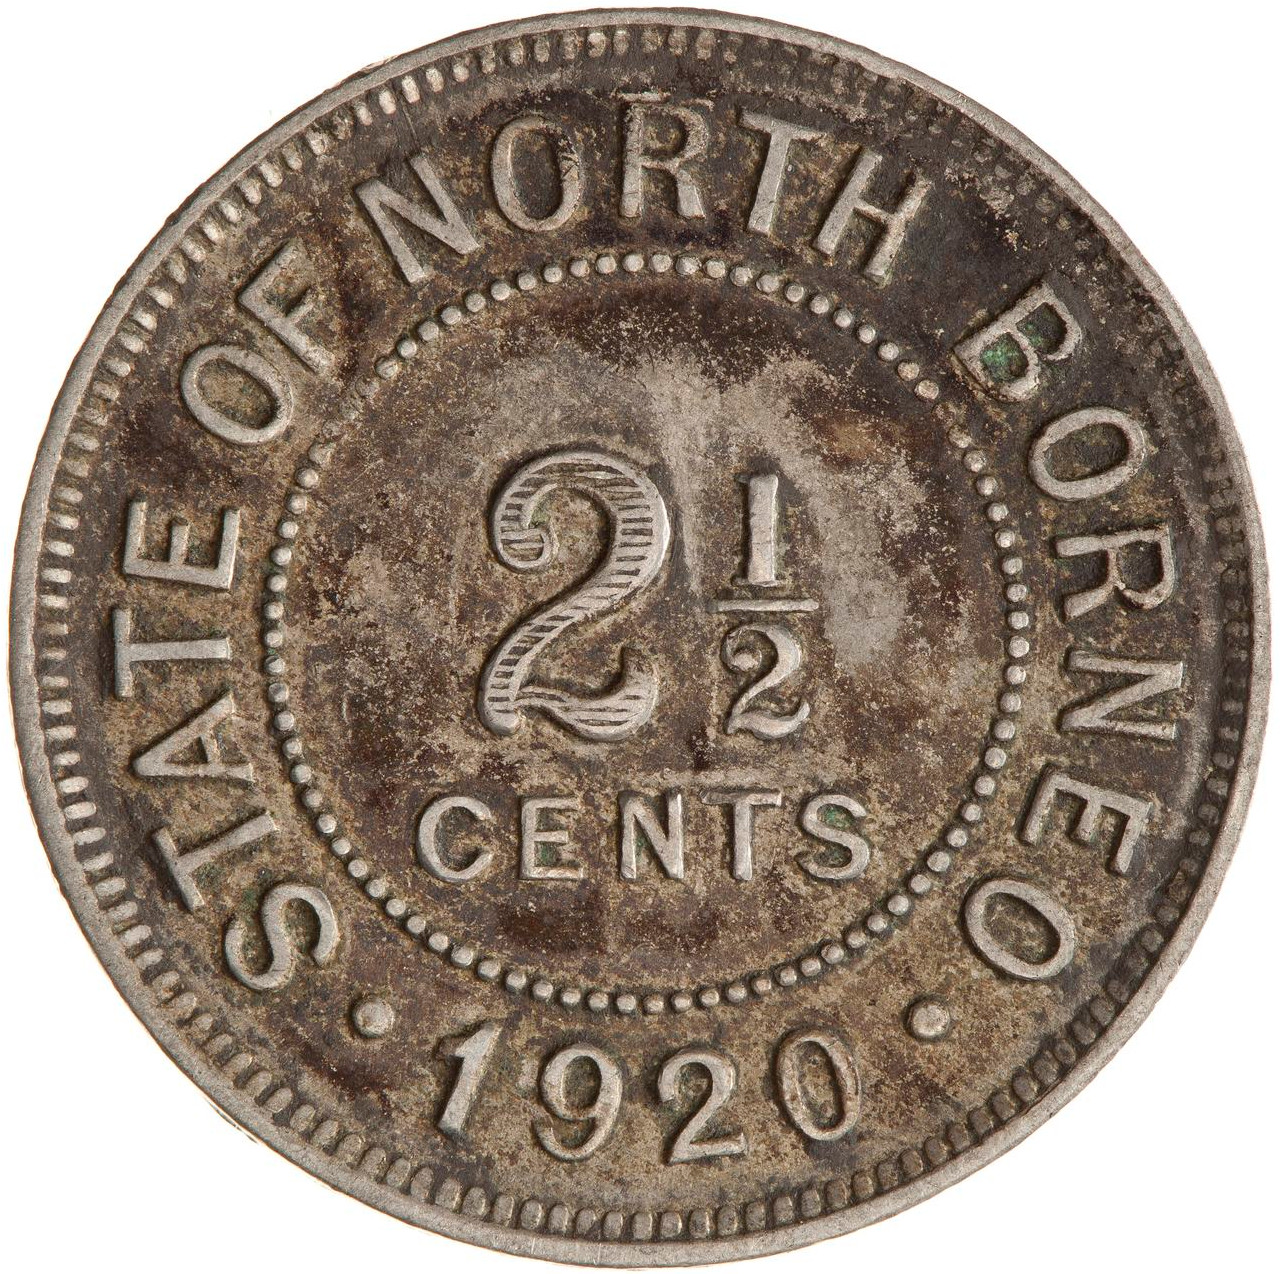 Two and a Half Cents 1920: Photo Coin - 2 1/2 Cents, North Borneo, 1920